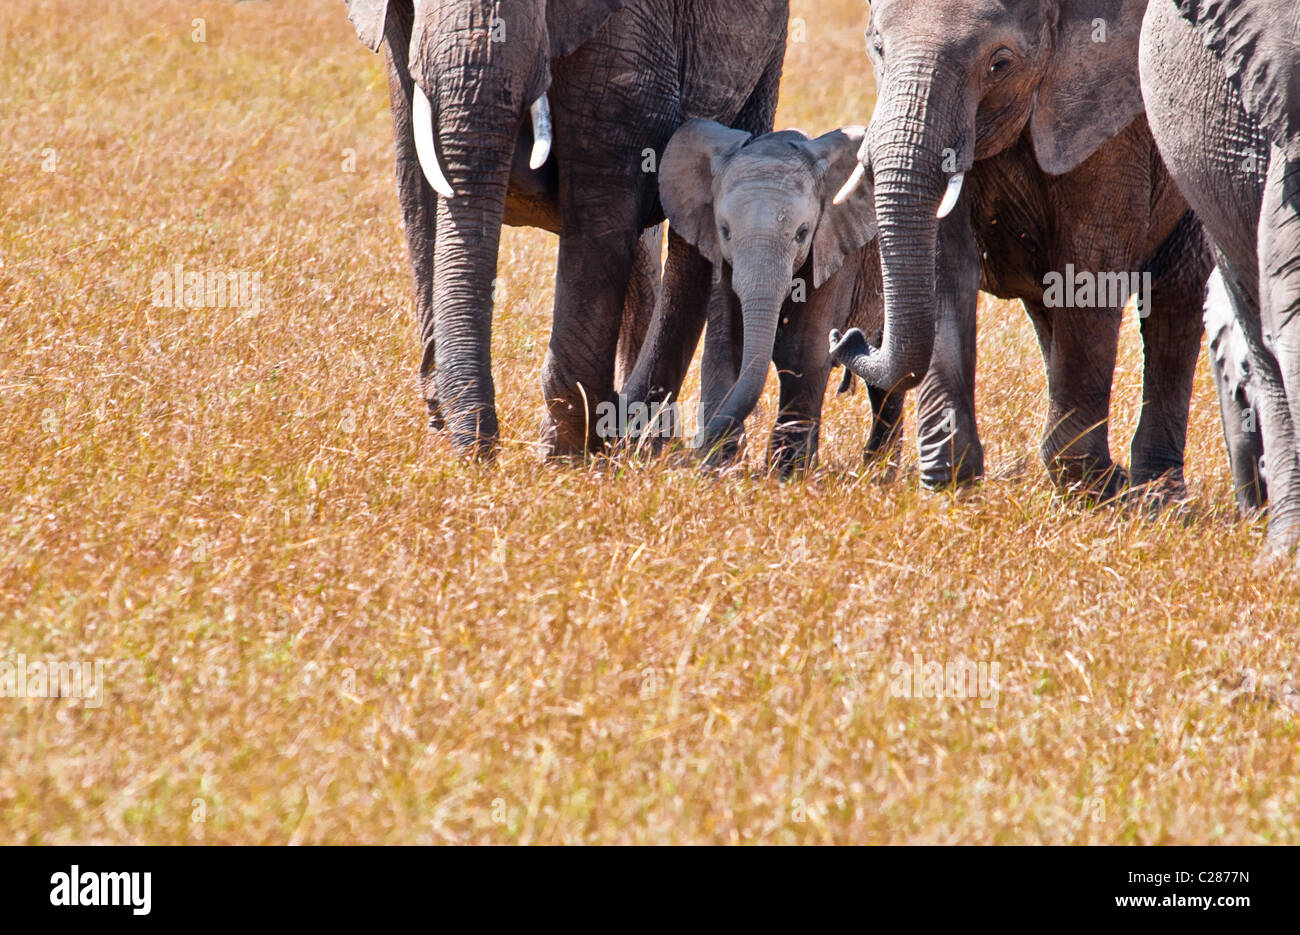 African Elephant Cows and Calf,  Loxodonta africana, Masai Mara National Reserve, Kenya, East Africa - Stock Image